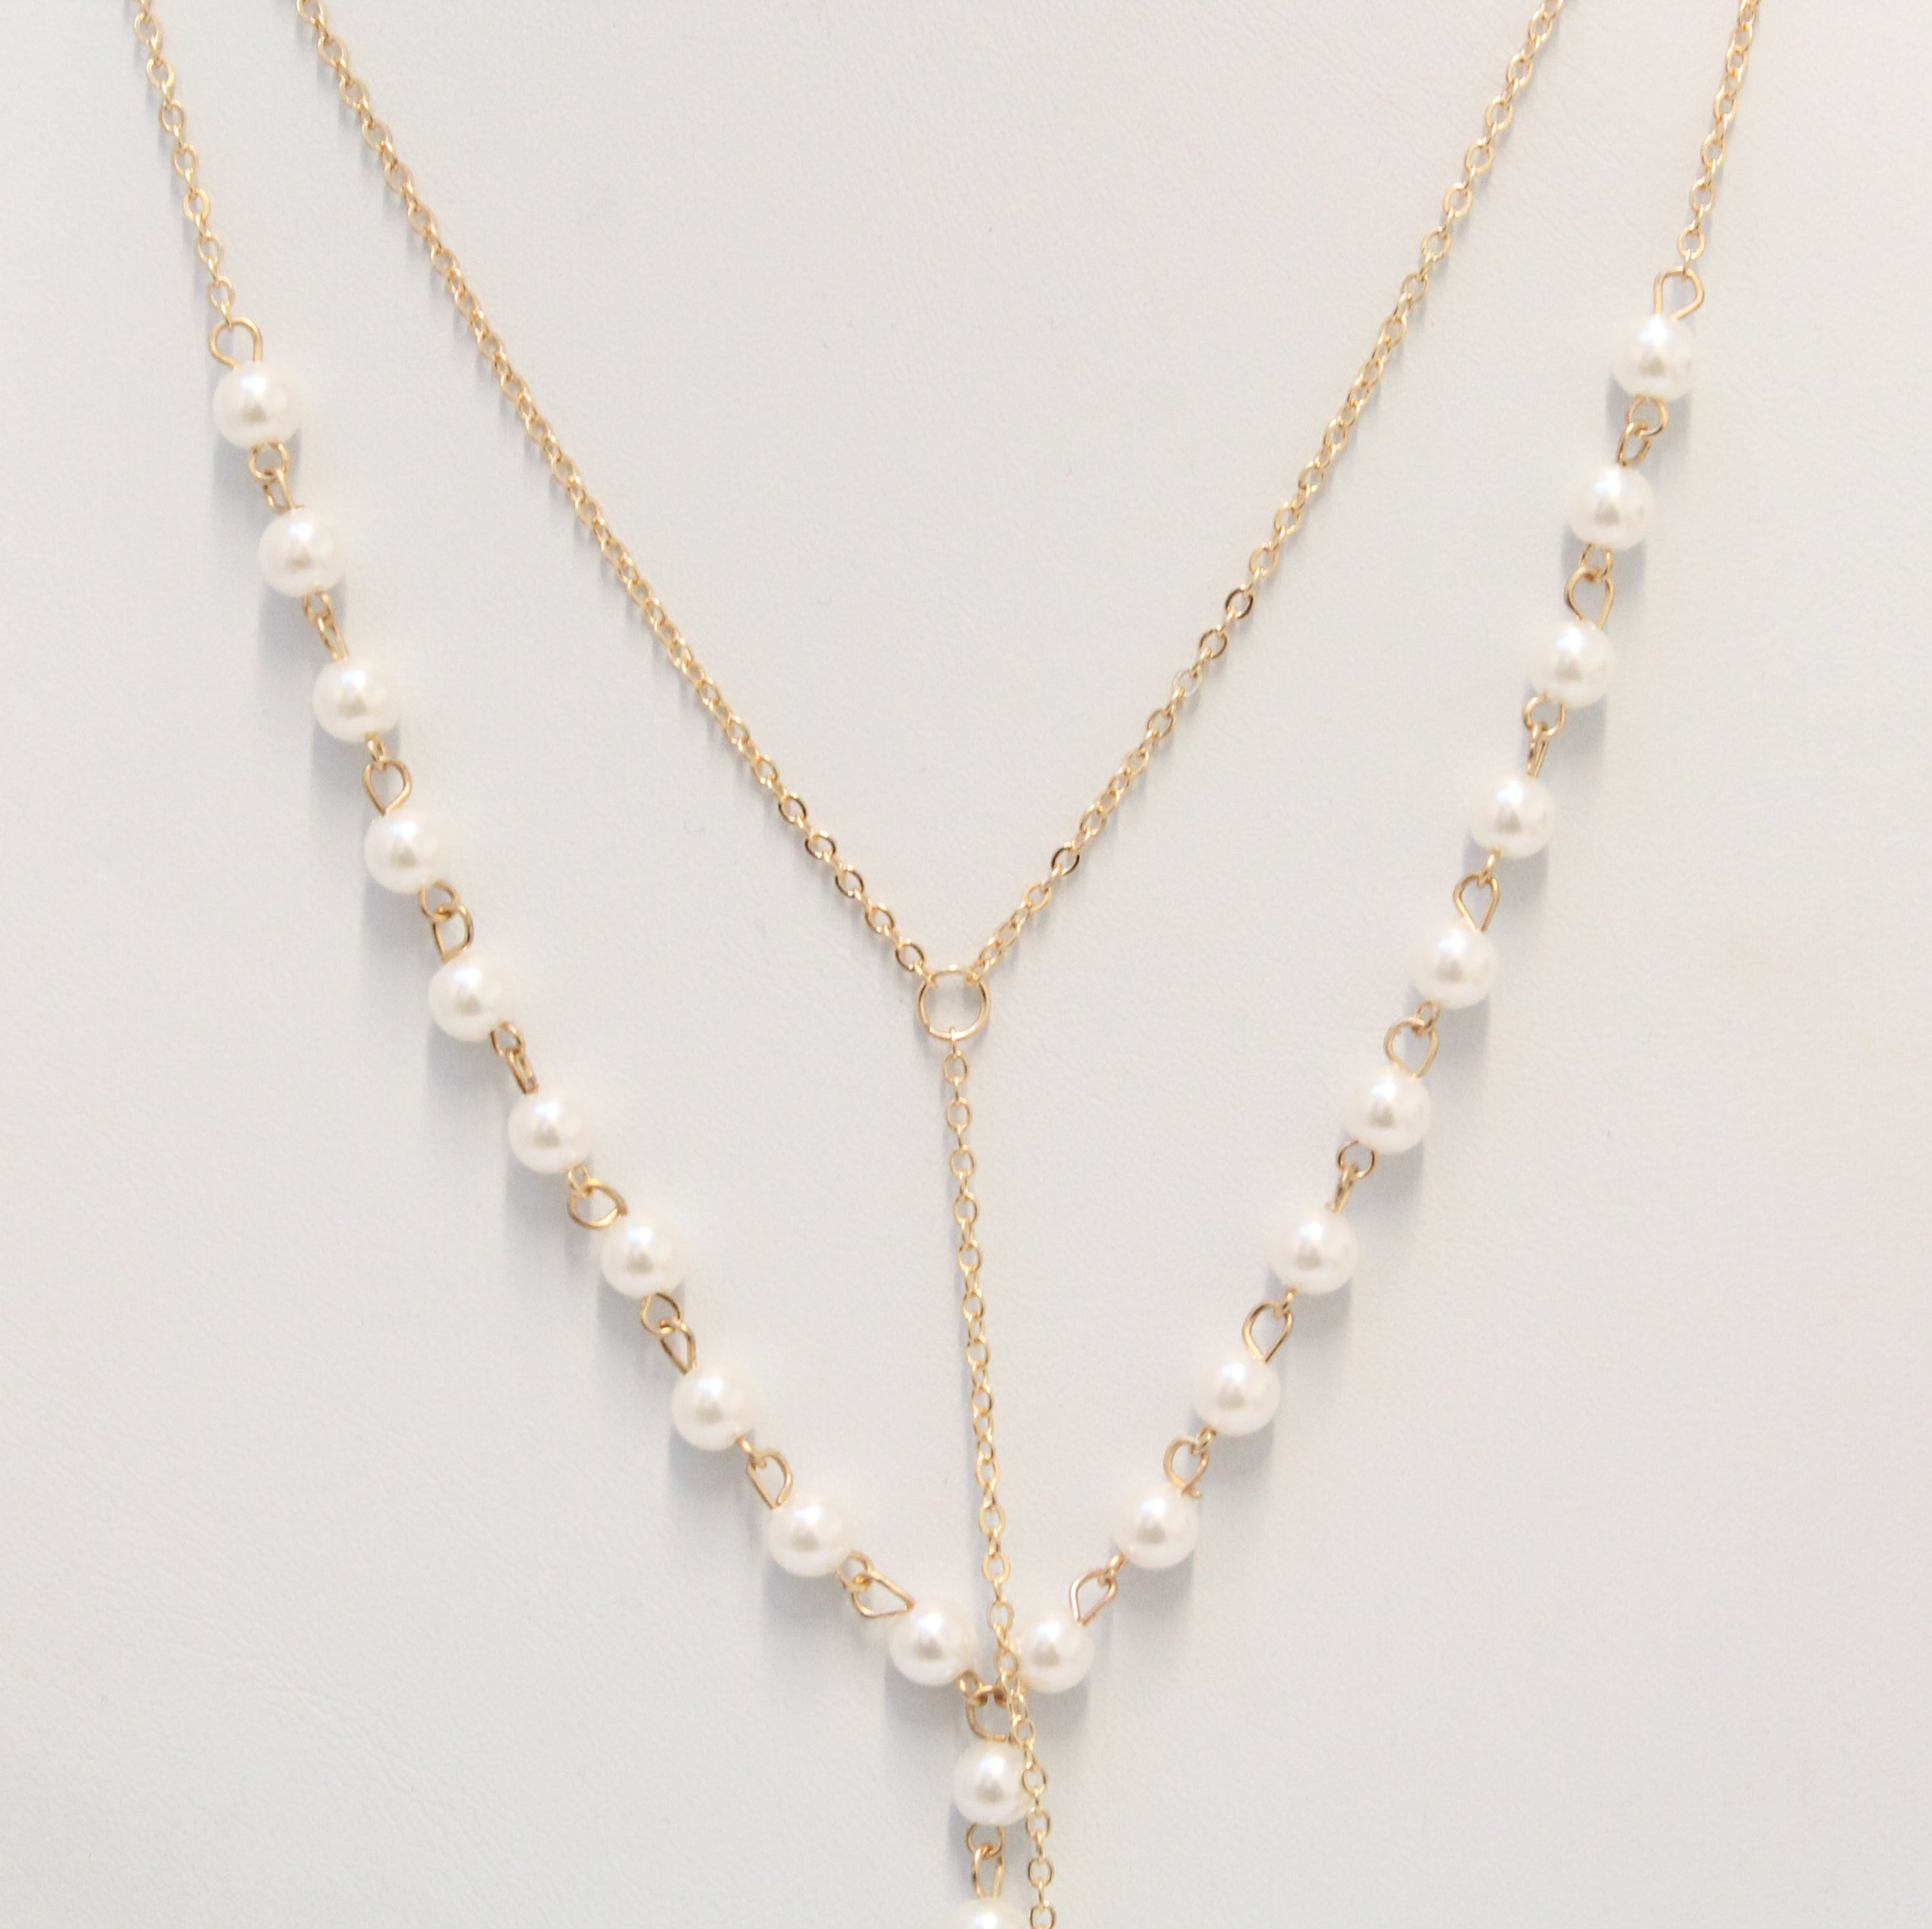 Laron - Pearl and Gold Style layered necklace